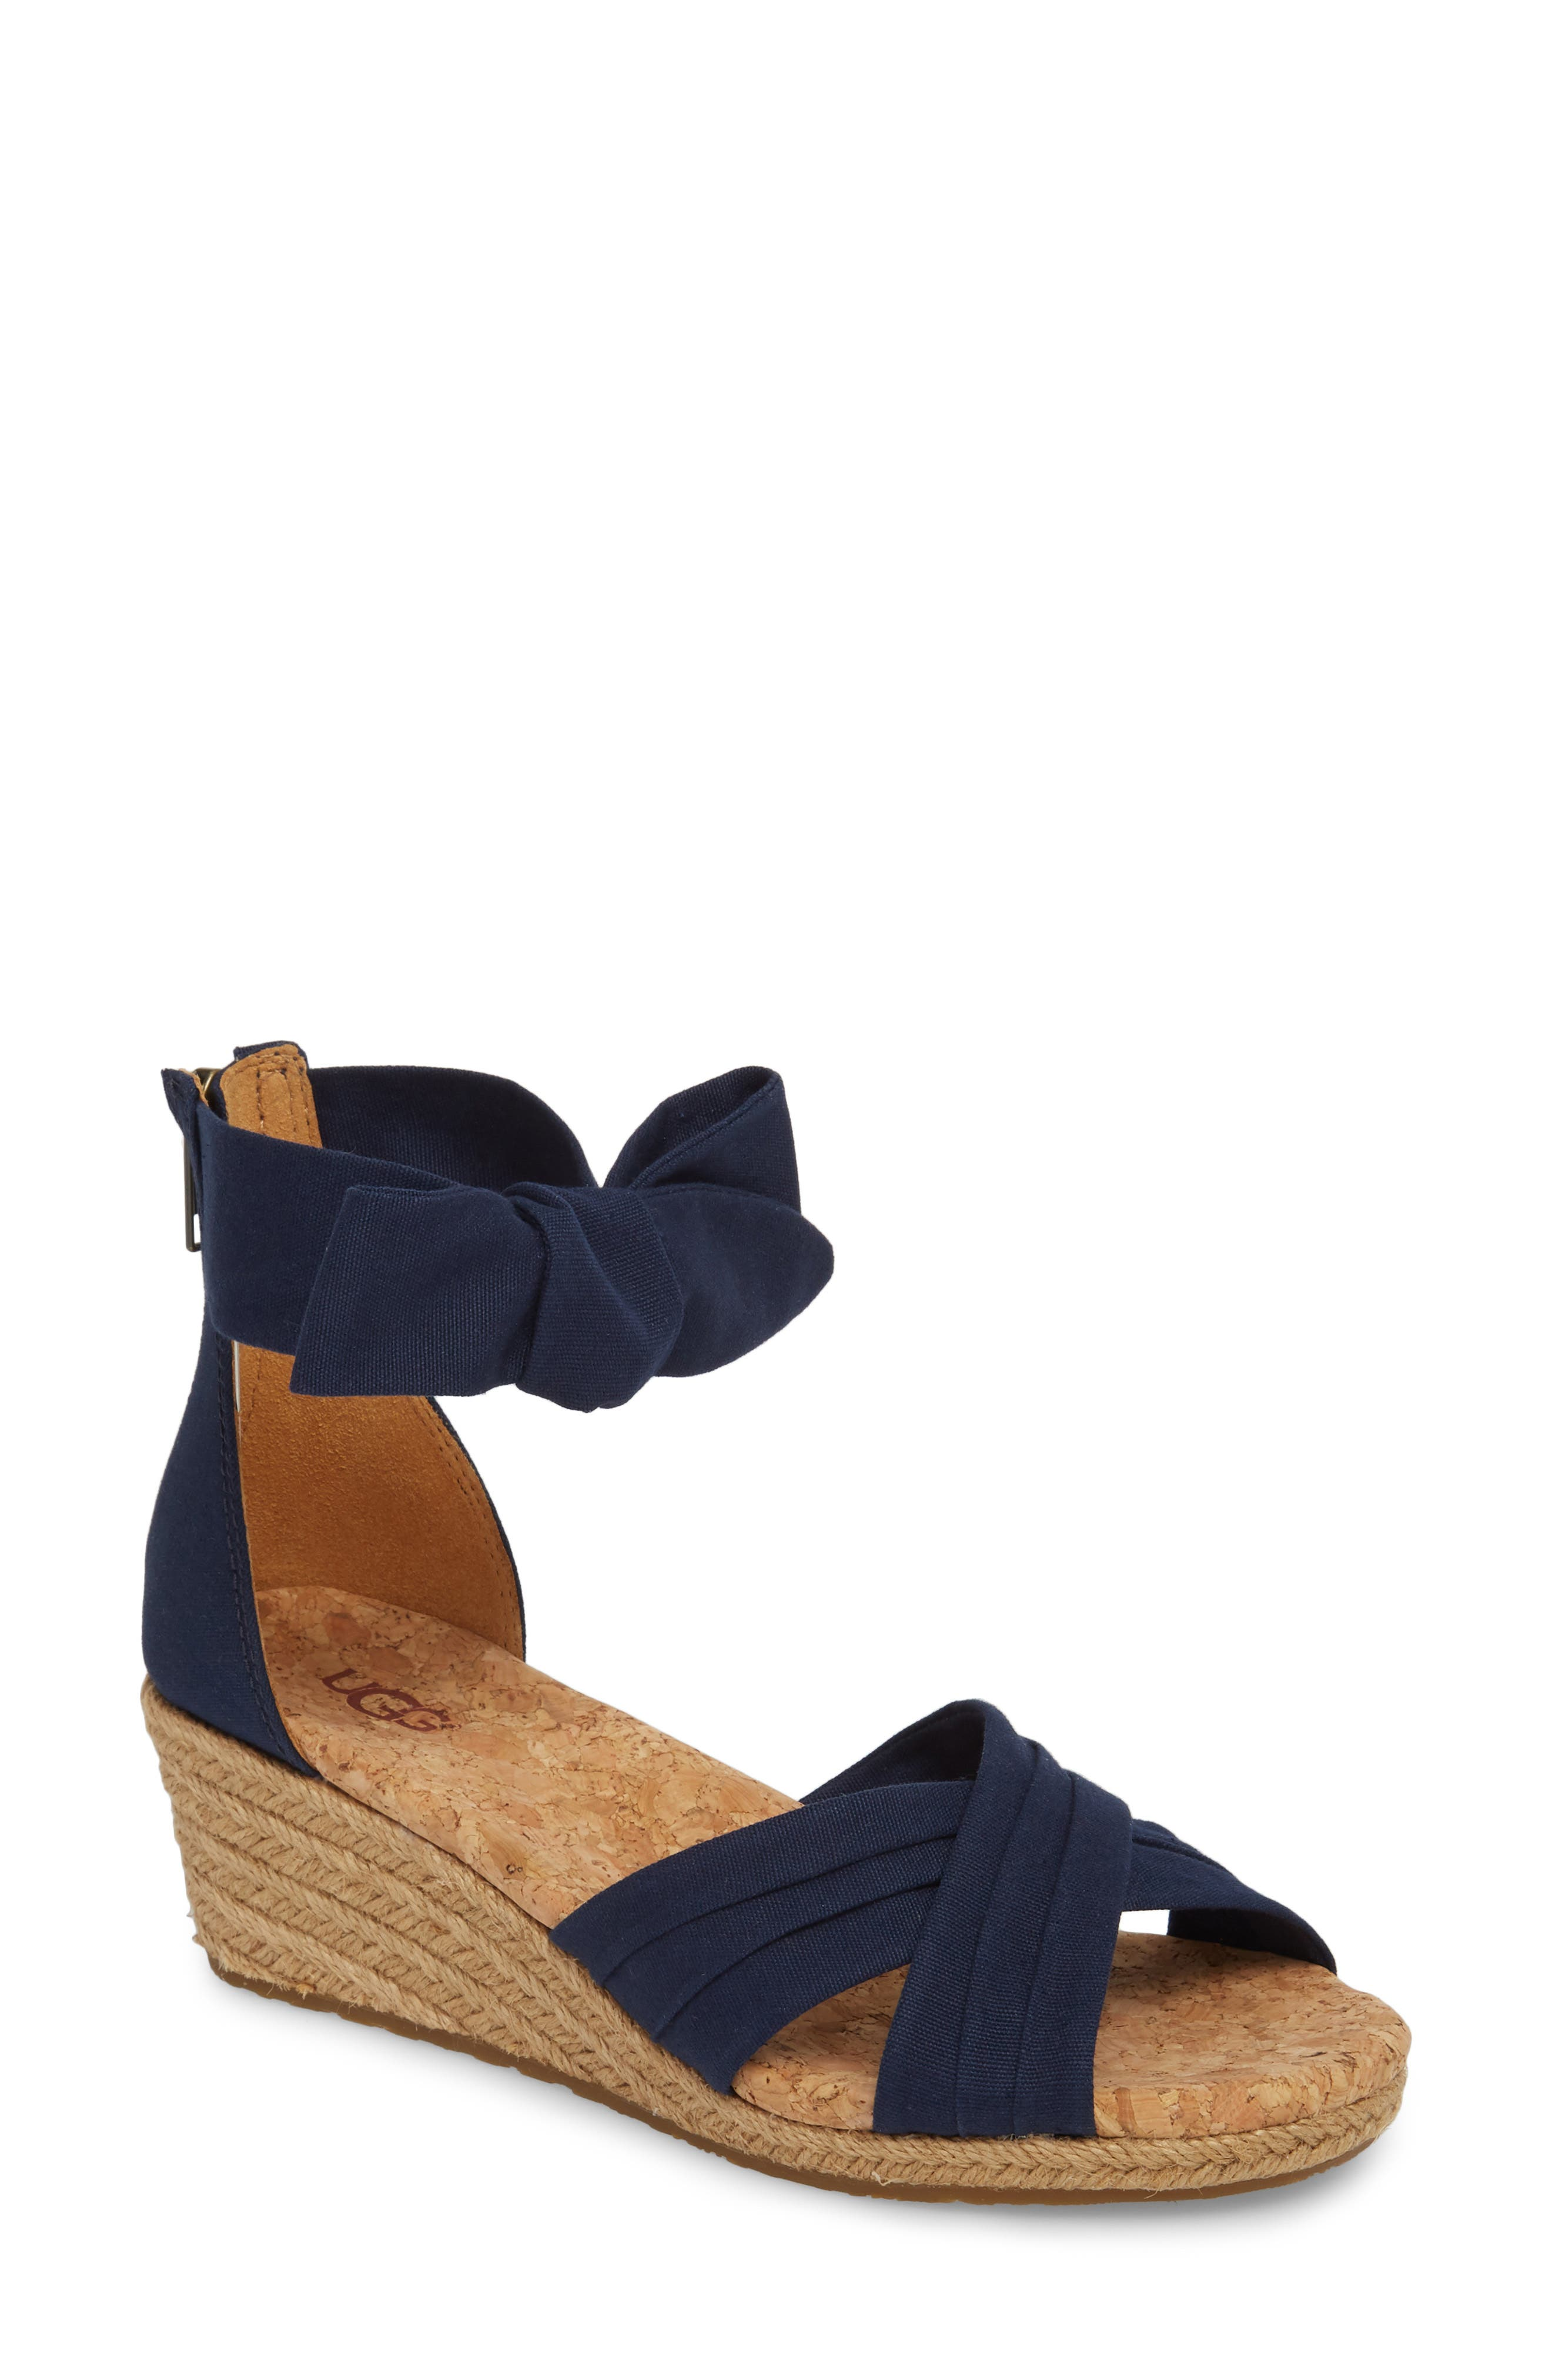 Traci Espadrille Wedge Sandal,                             Main thumbnail 1, color,                             Navy